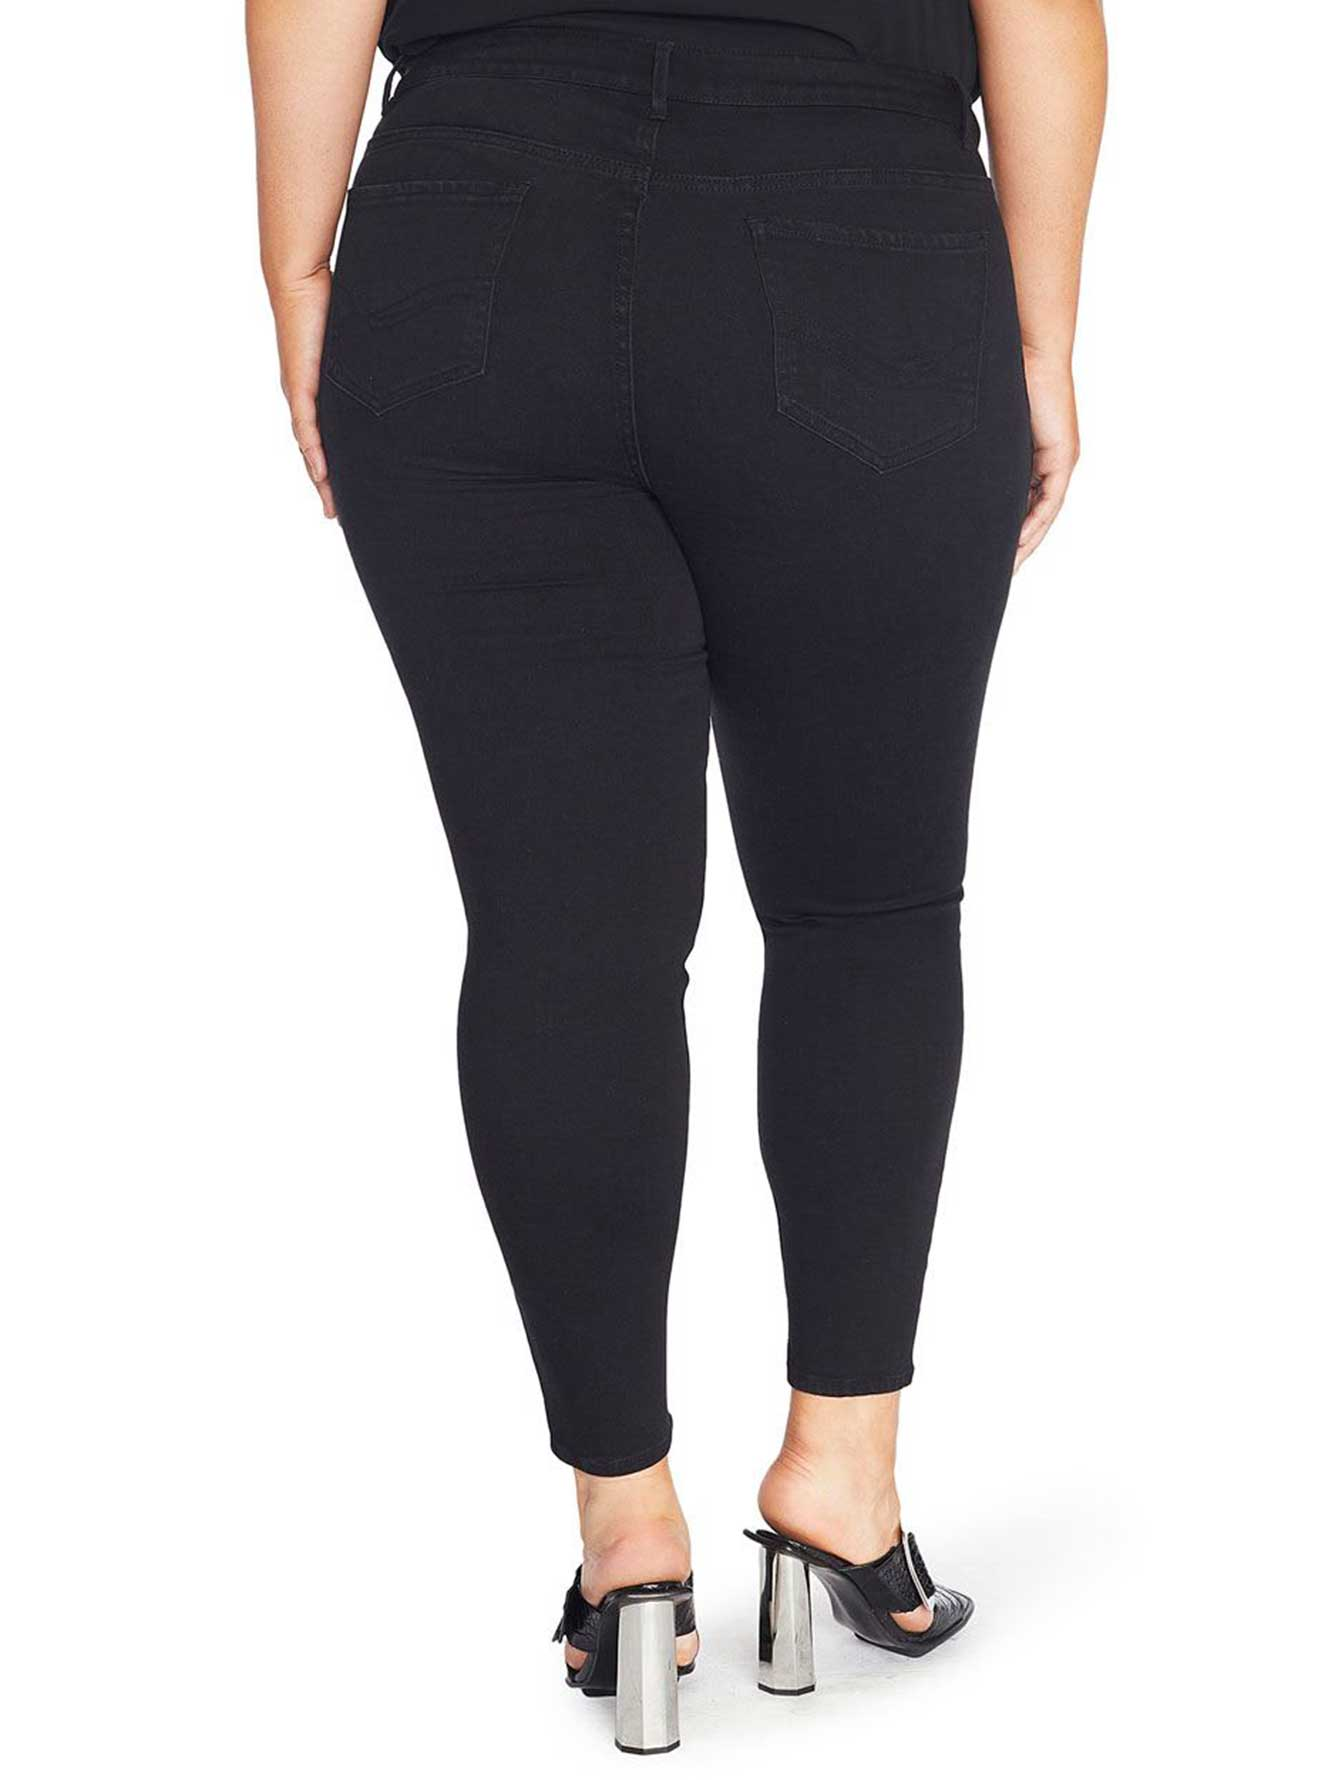 The Pin-Up Skinny Summit Jeans - Rebel Wilson x Angels